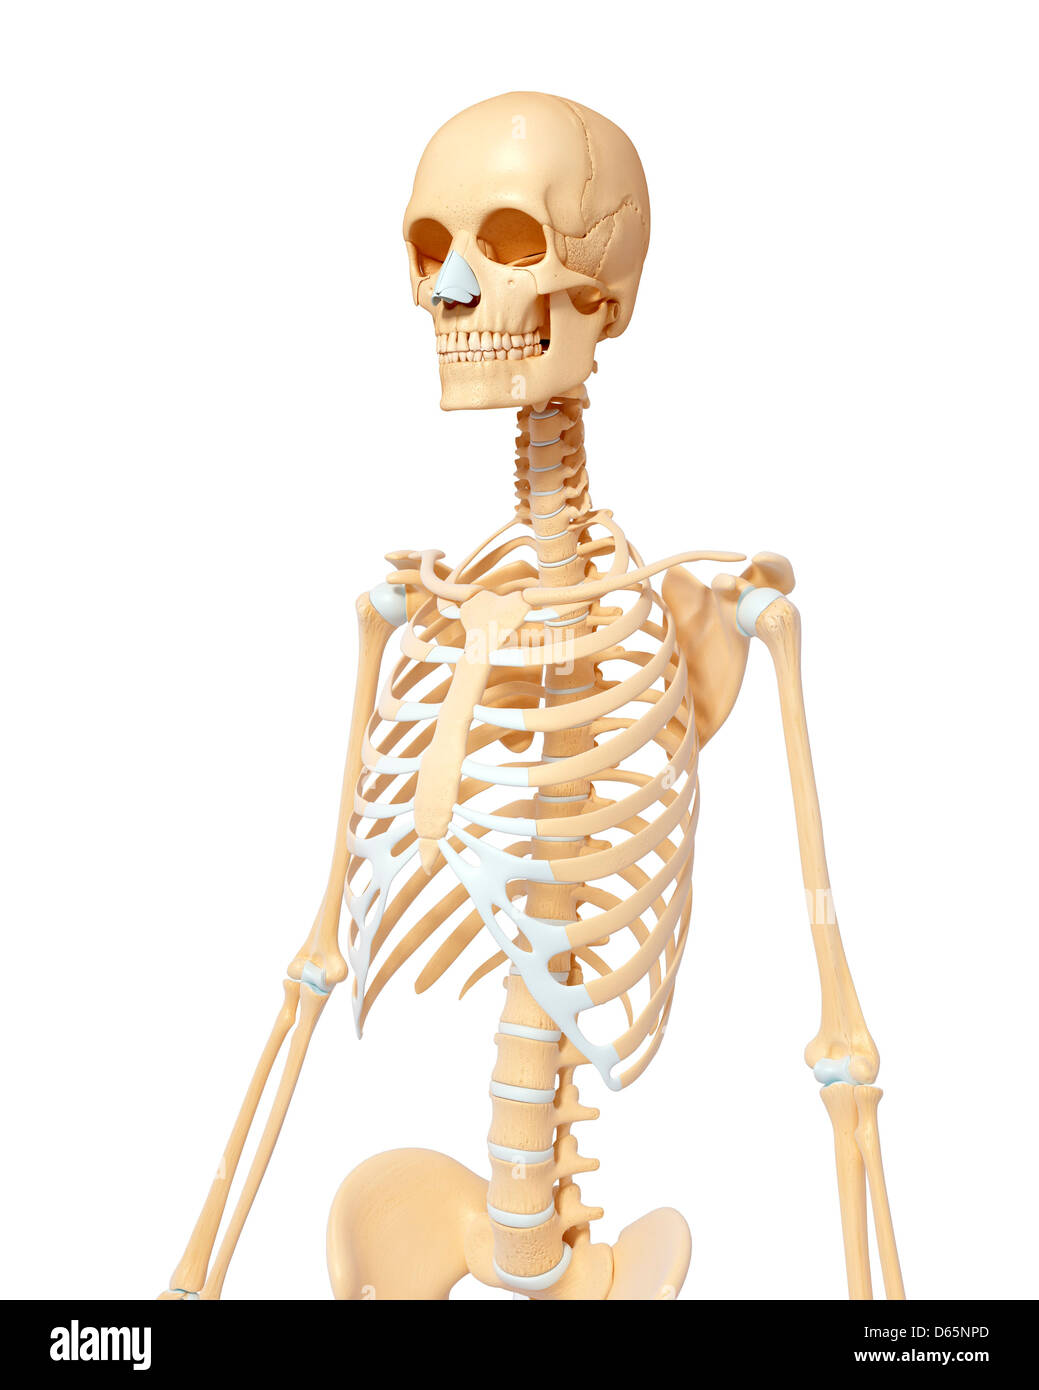 3d rendered anatomy illustration of a female skeleton with.html